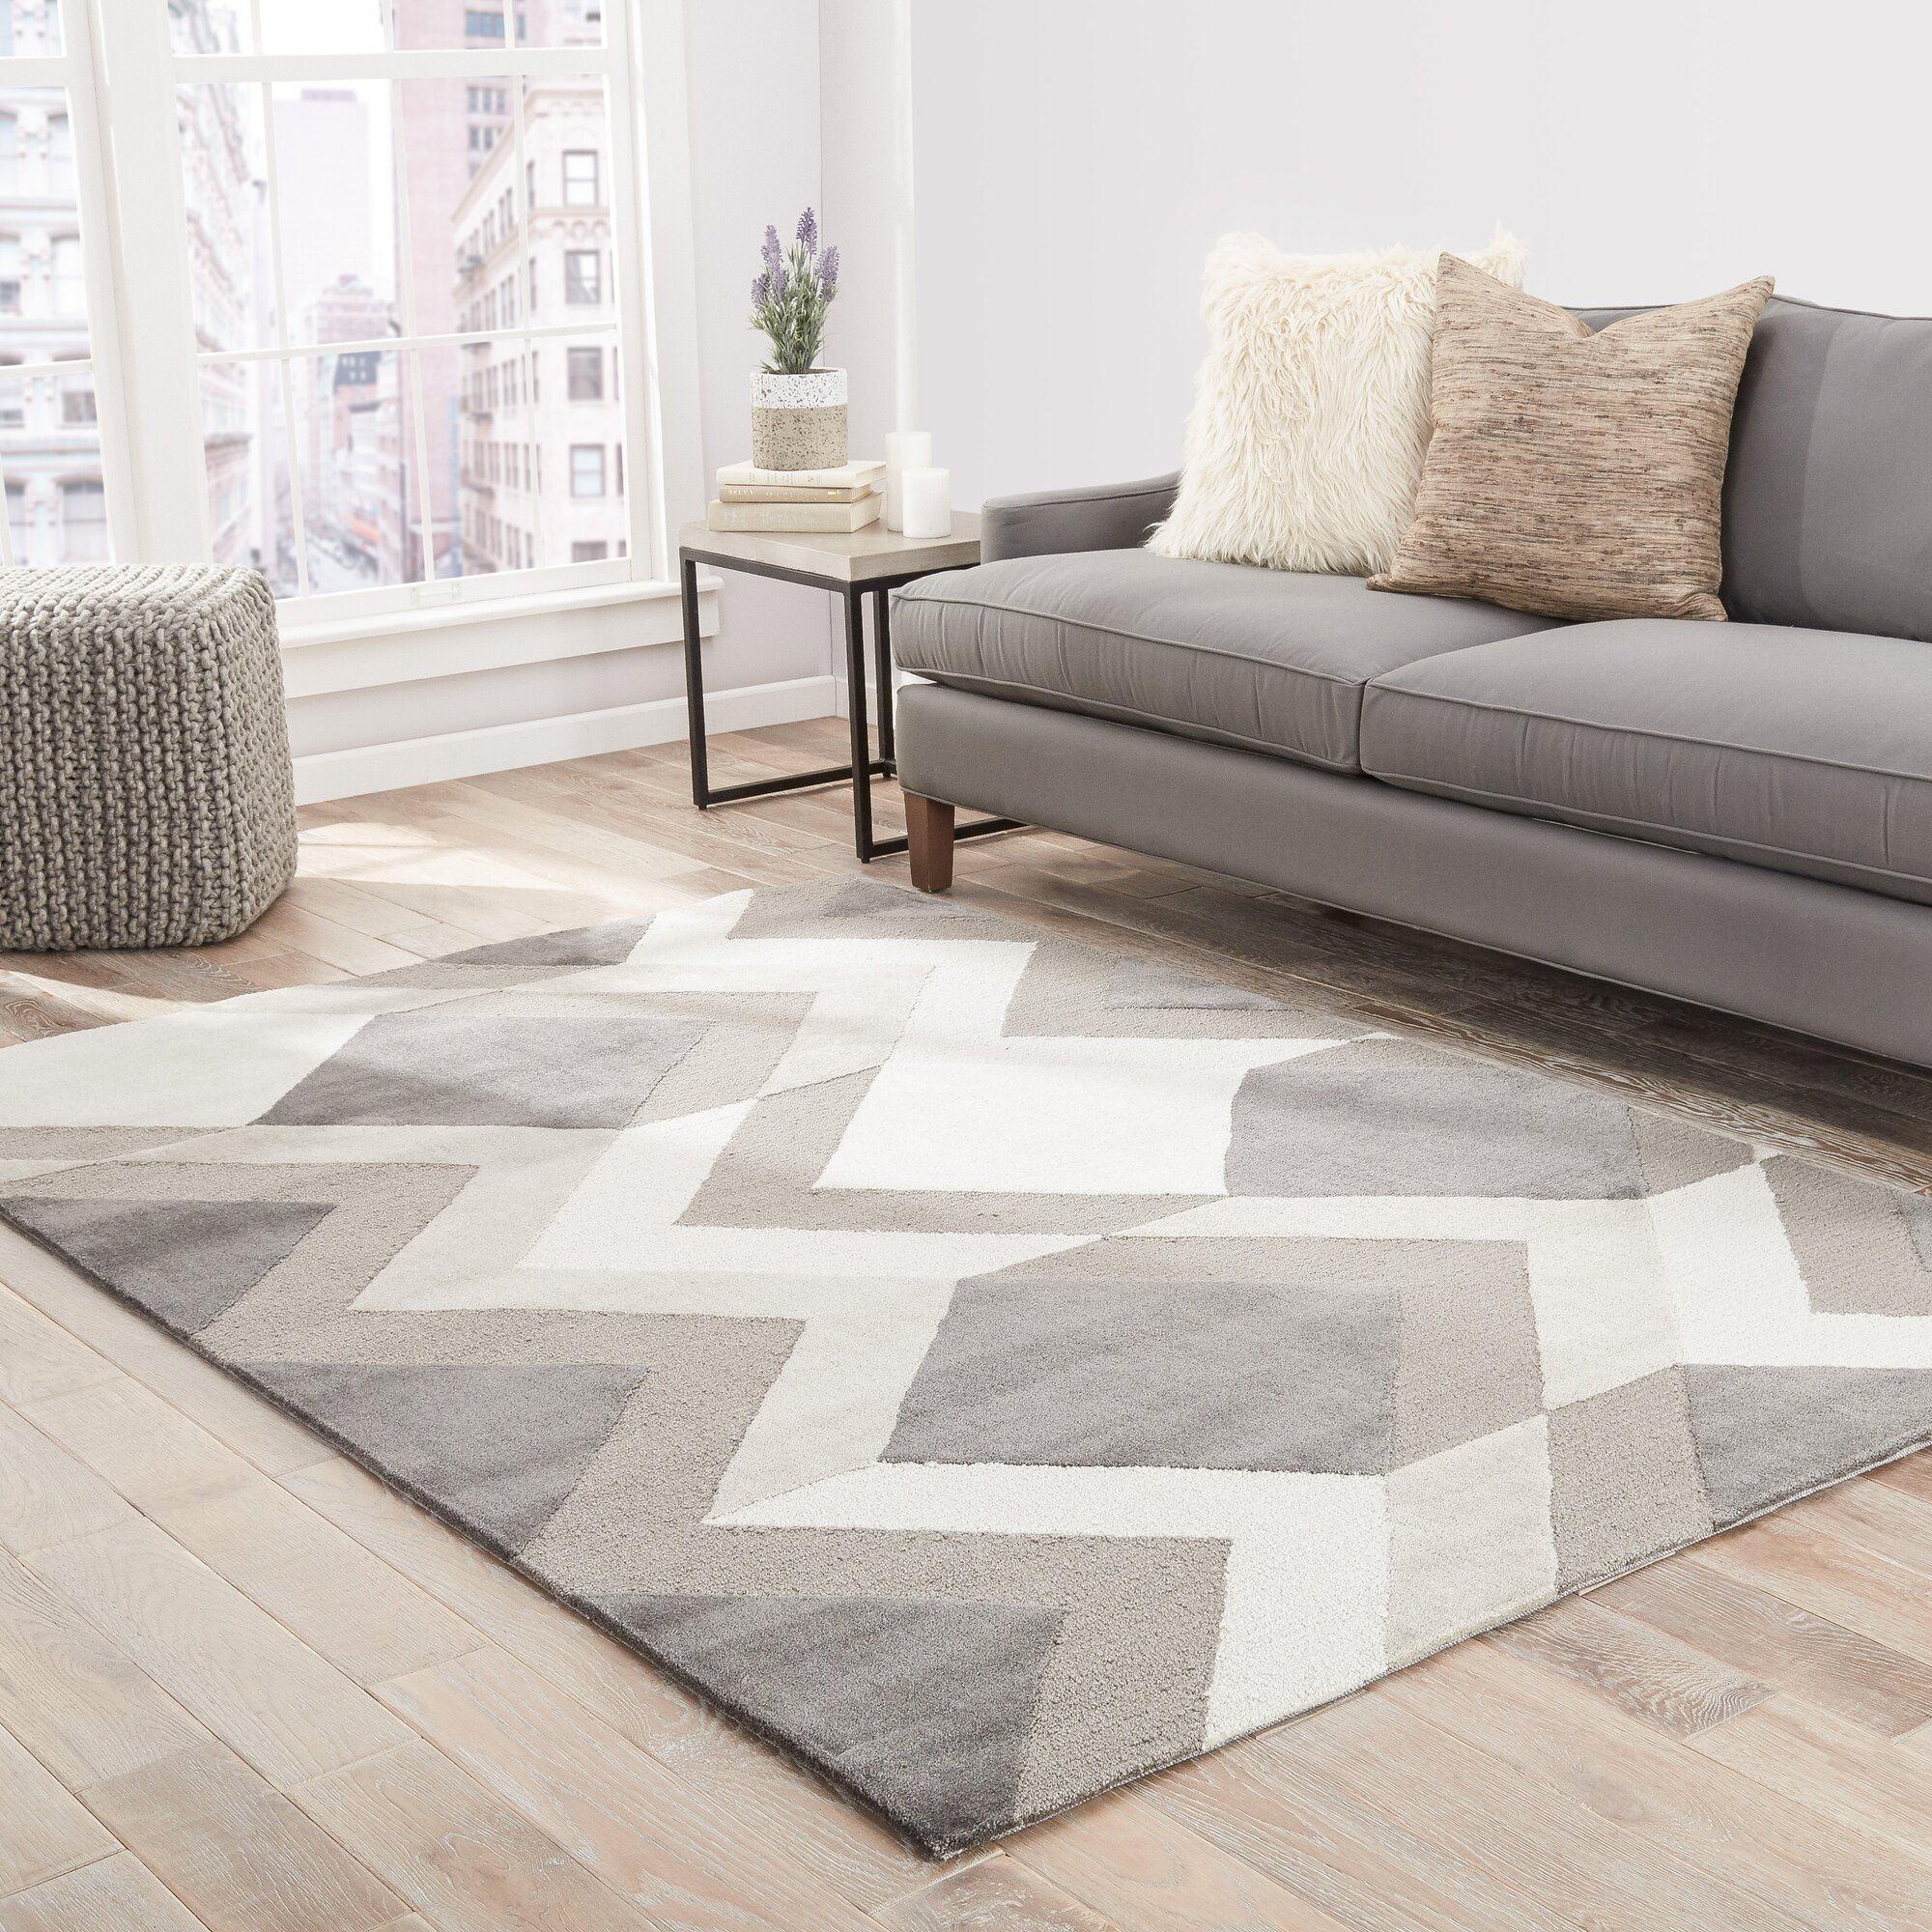 Shayla Hand Tufted Greige Cream Tan Area Rug Amp Reviews